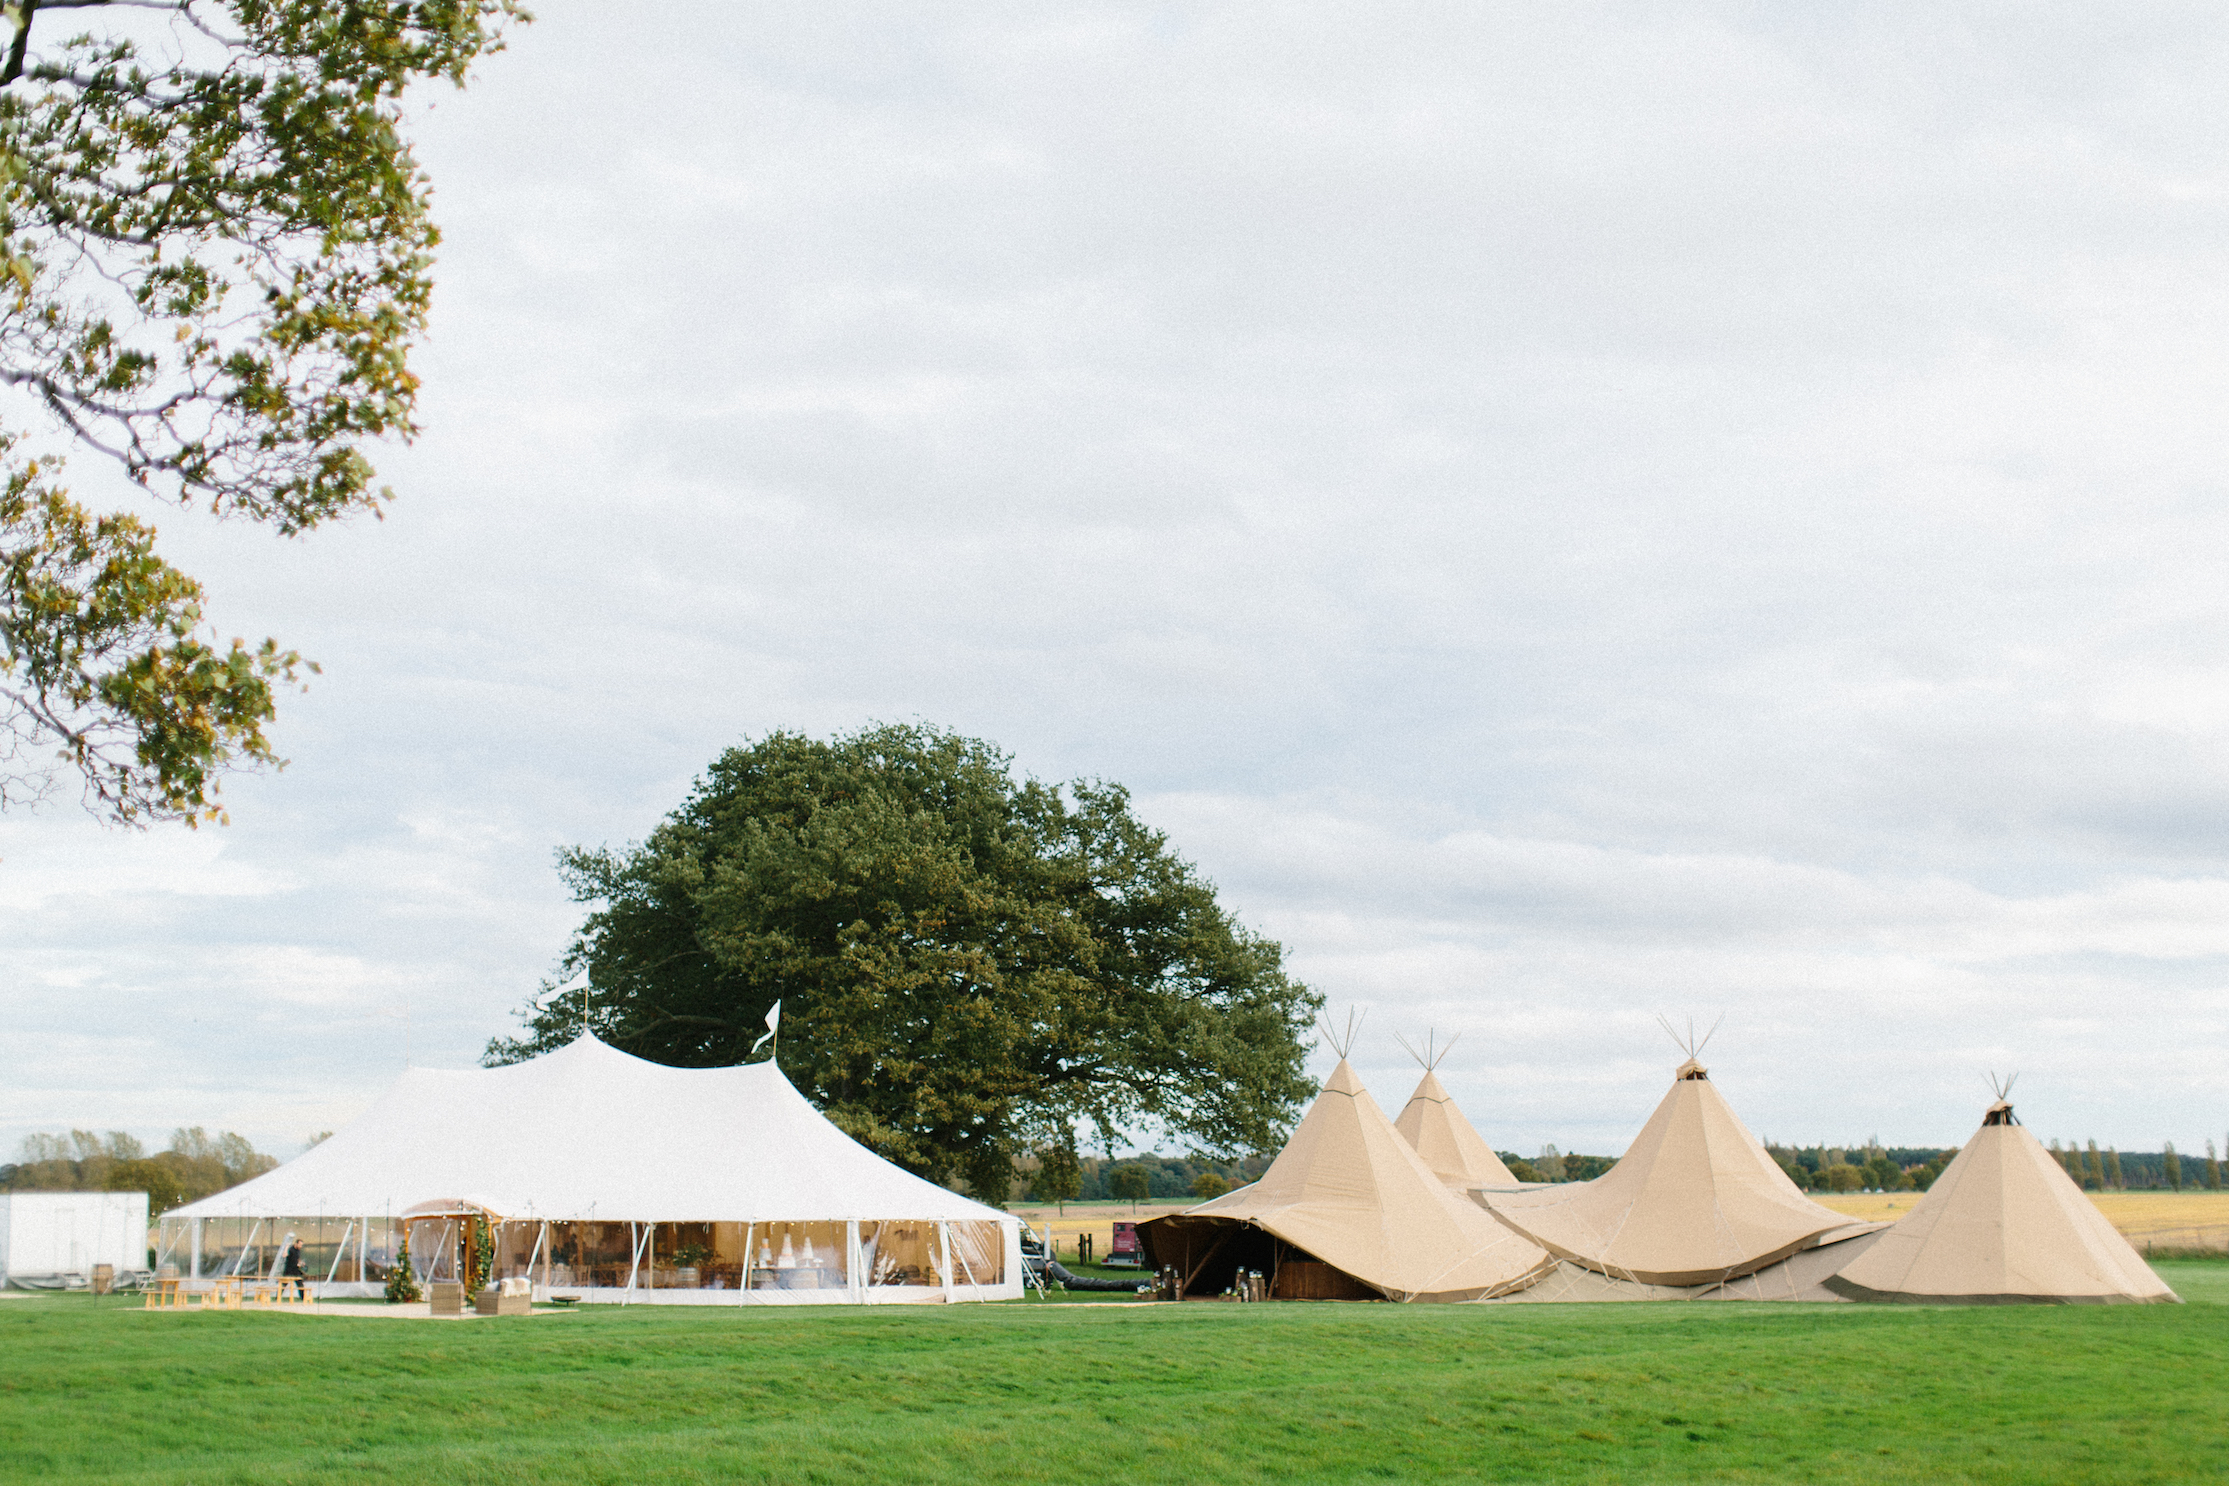 PapaKåta Autumn Open Weekend 2017: Teepees and Sperry Tents at Escrick Park by Melissa Beattie